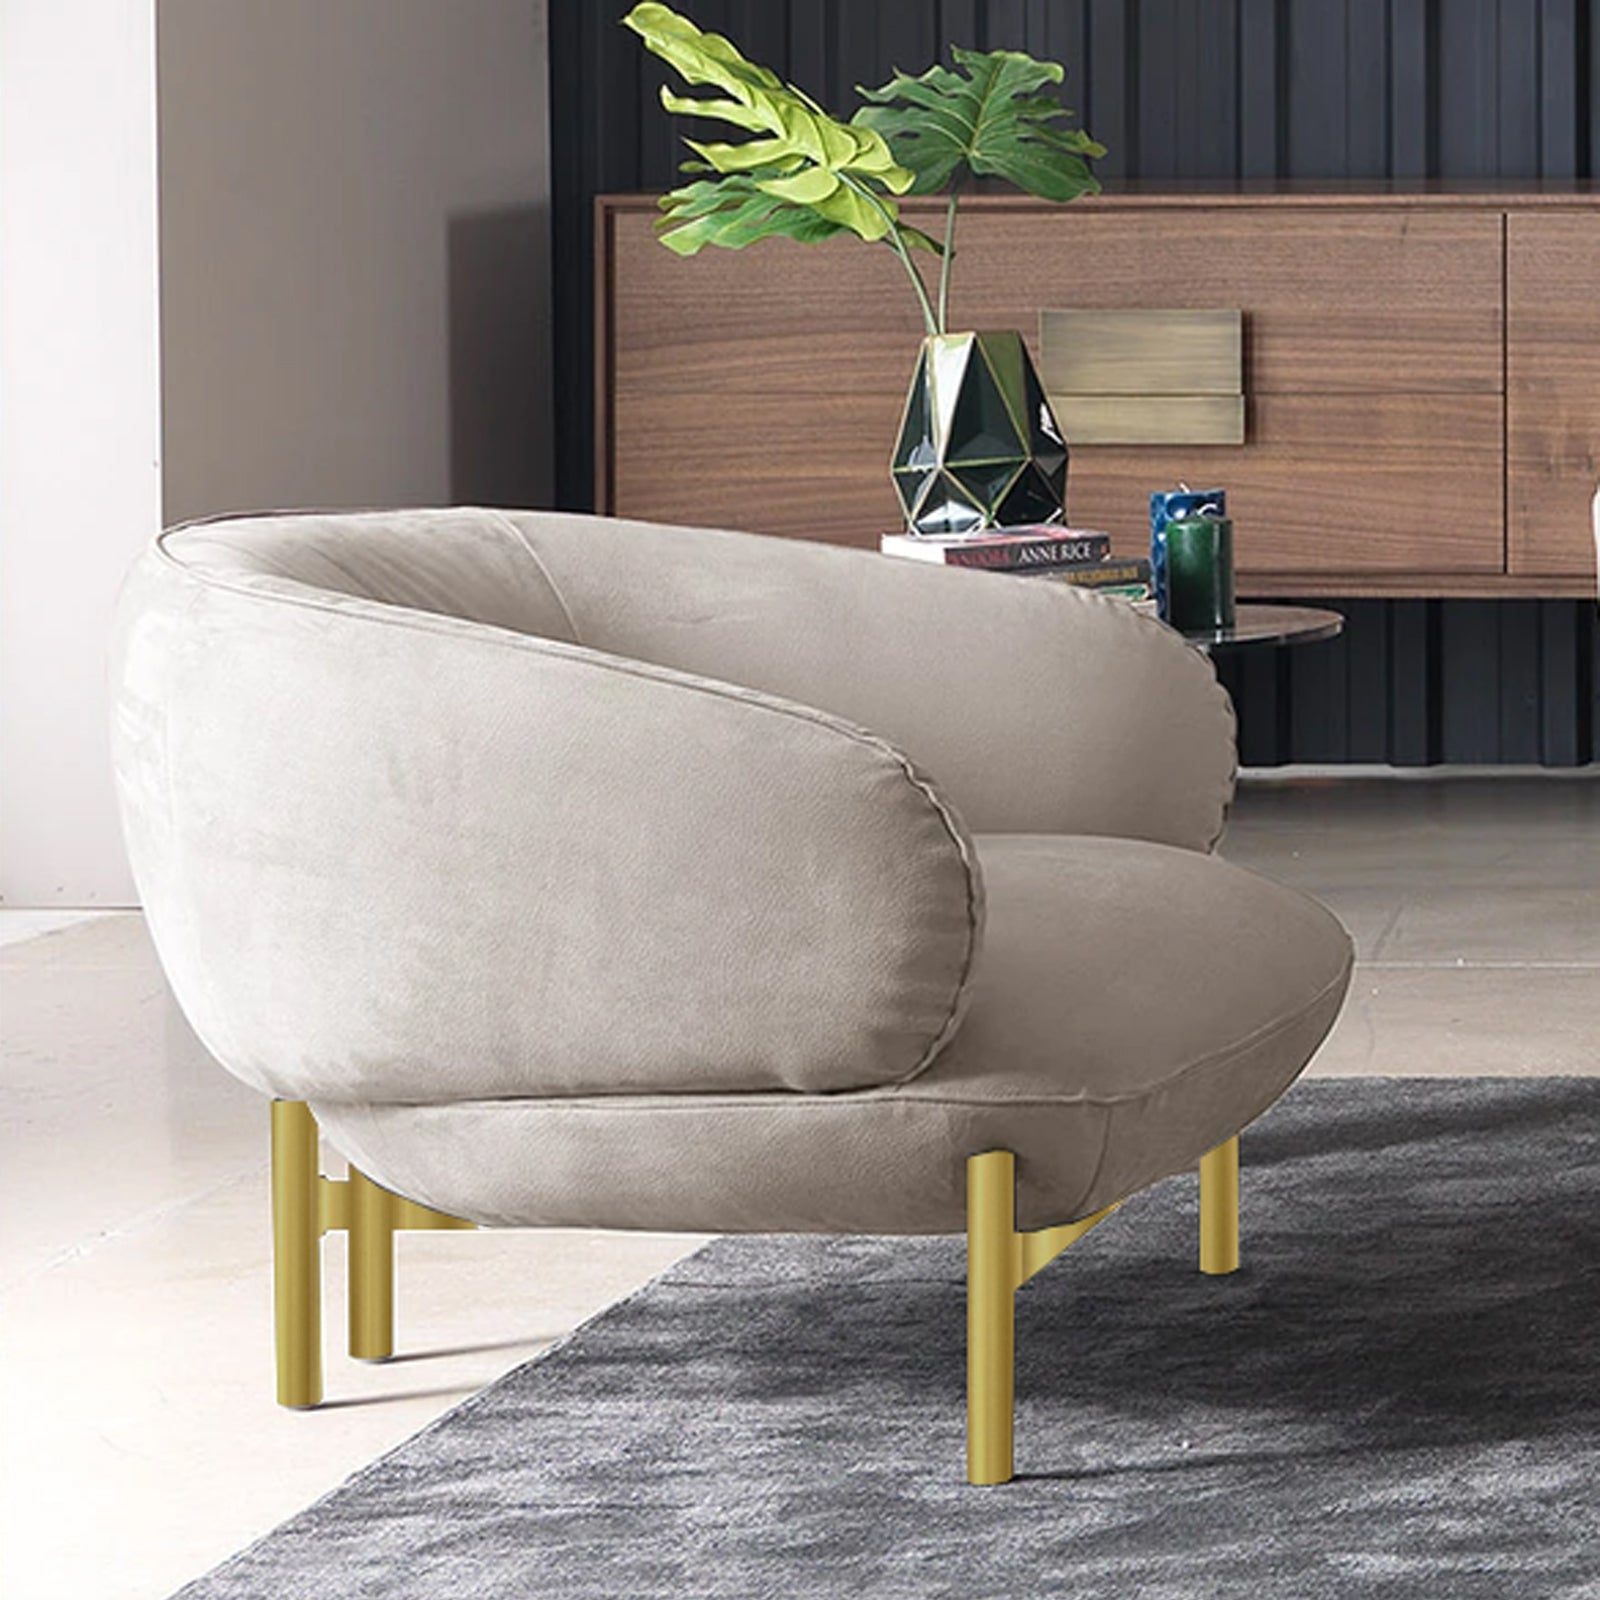 NEXT Armchair   NEXT002-chair-B -  كرسي بذراعين نيكست - Shop Online Furniture and Home Decor Store in Dubai, UAE at ebarza